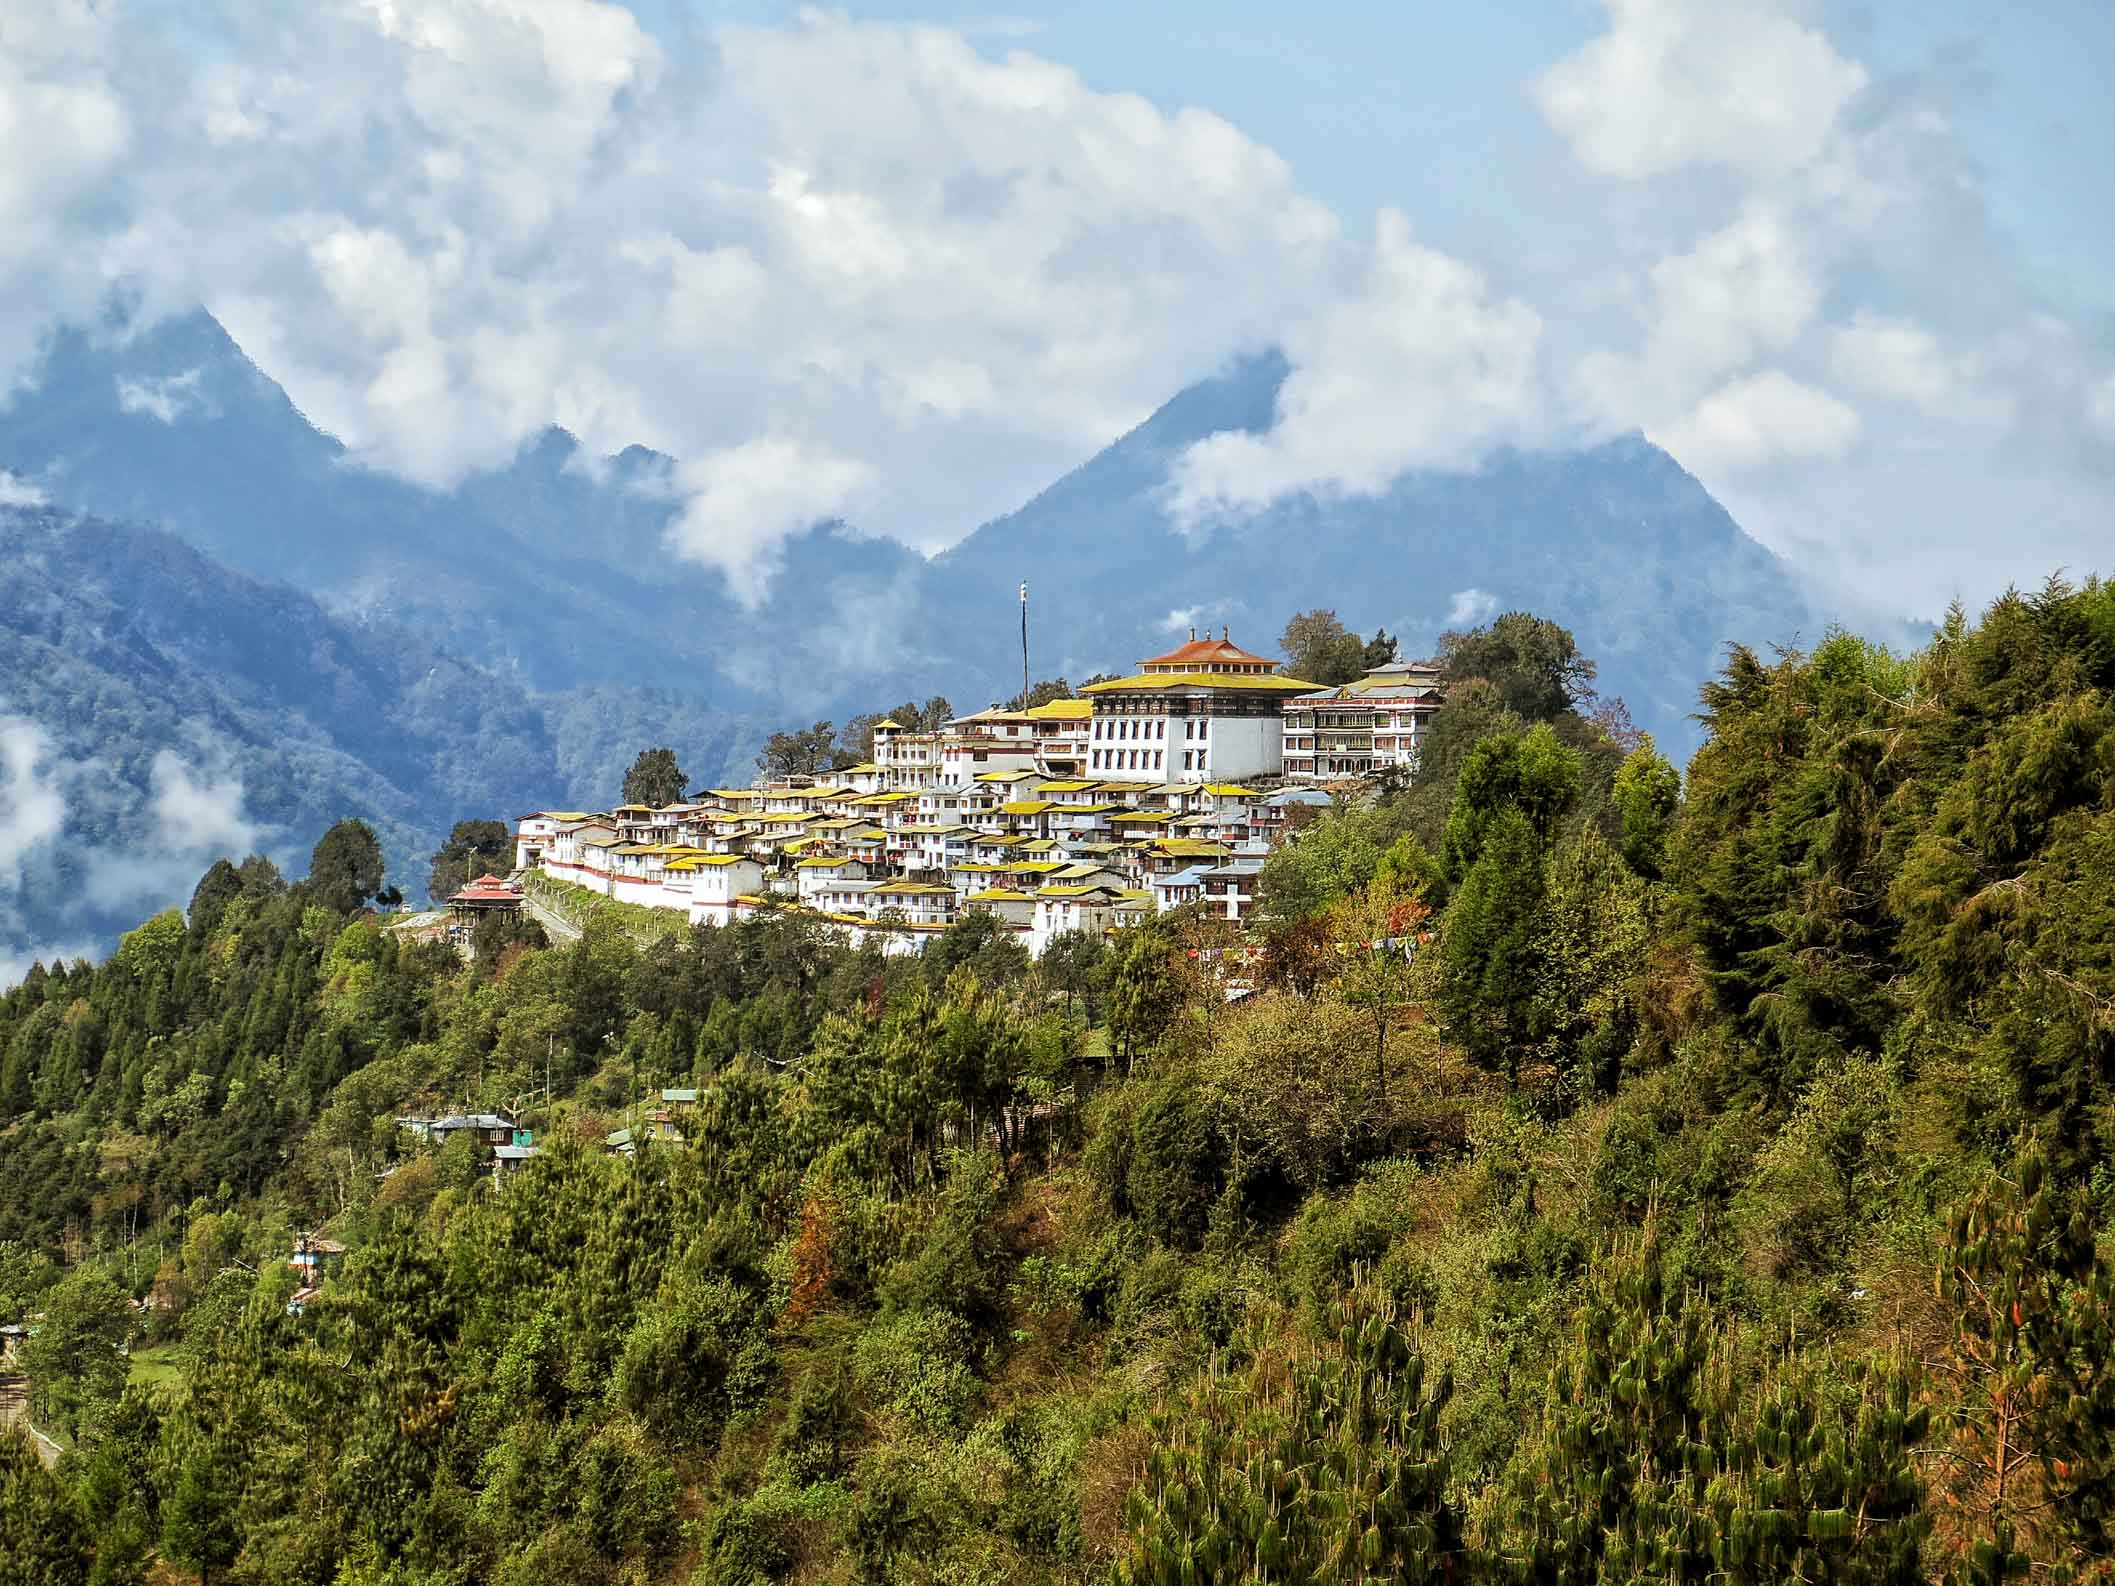 Tawang Monastery in India